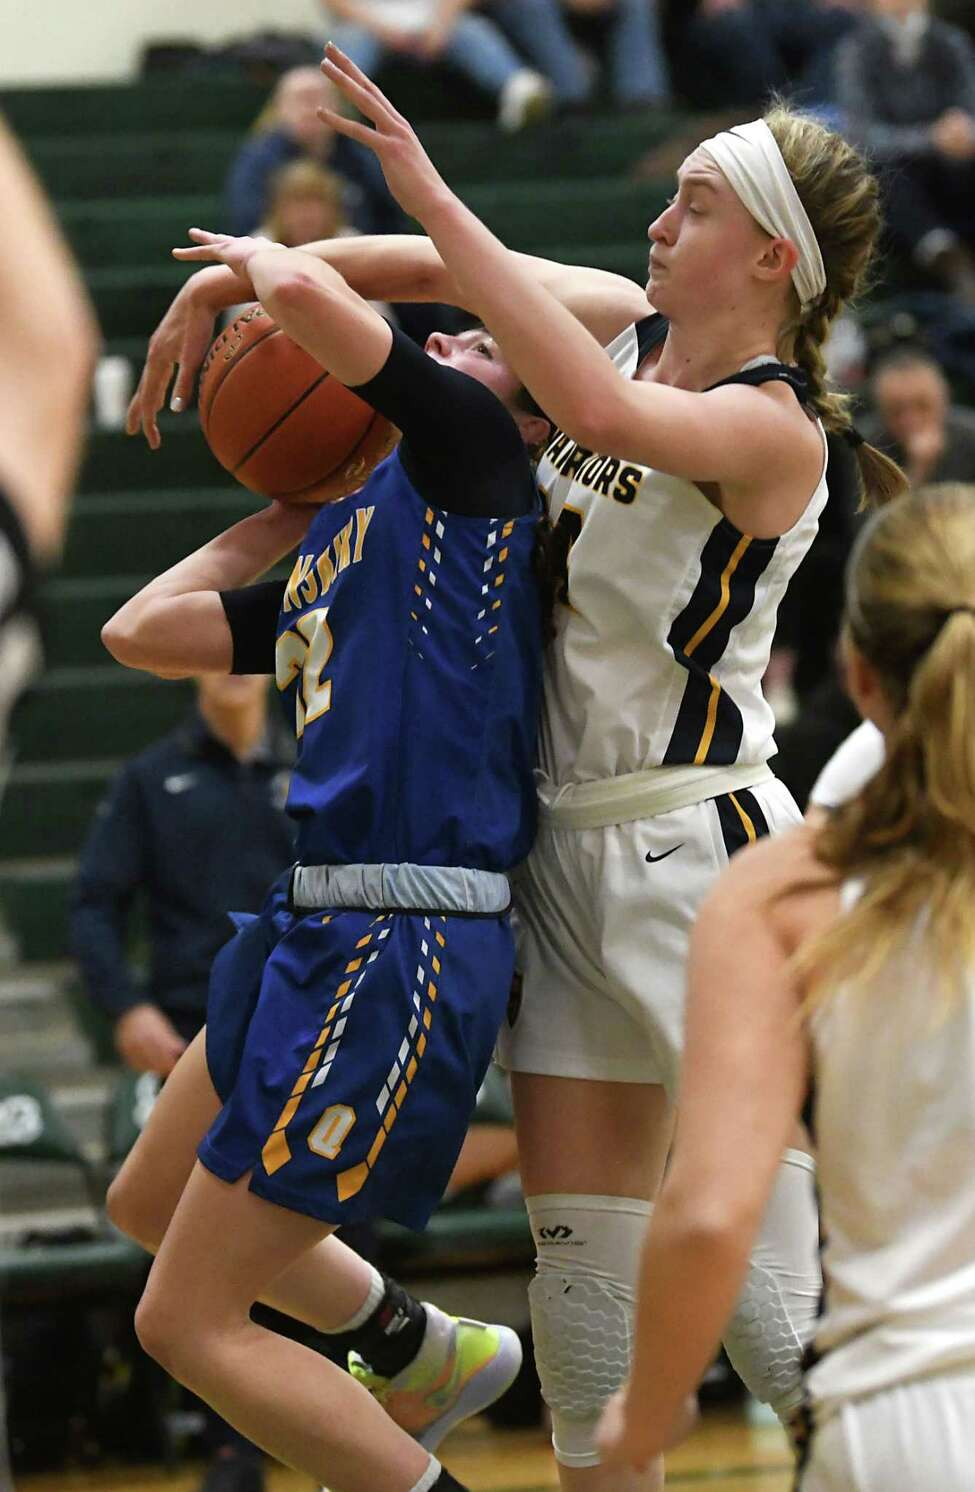 Queensbury's Hope Sullivan drives to the basket guarded by Our Lady of Lourdes' Ava Learn on Monday, Jan. 20, 2020 in Clifton Park, N.Y. (Lori Van Buren/Times Union)